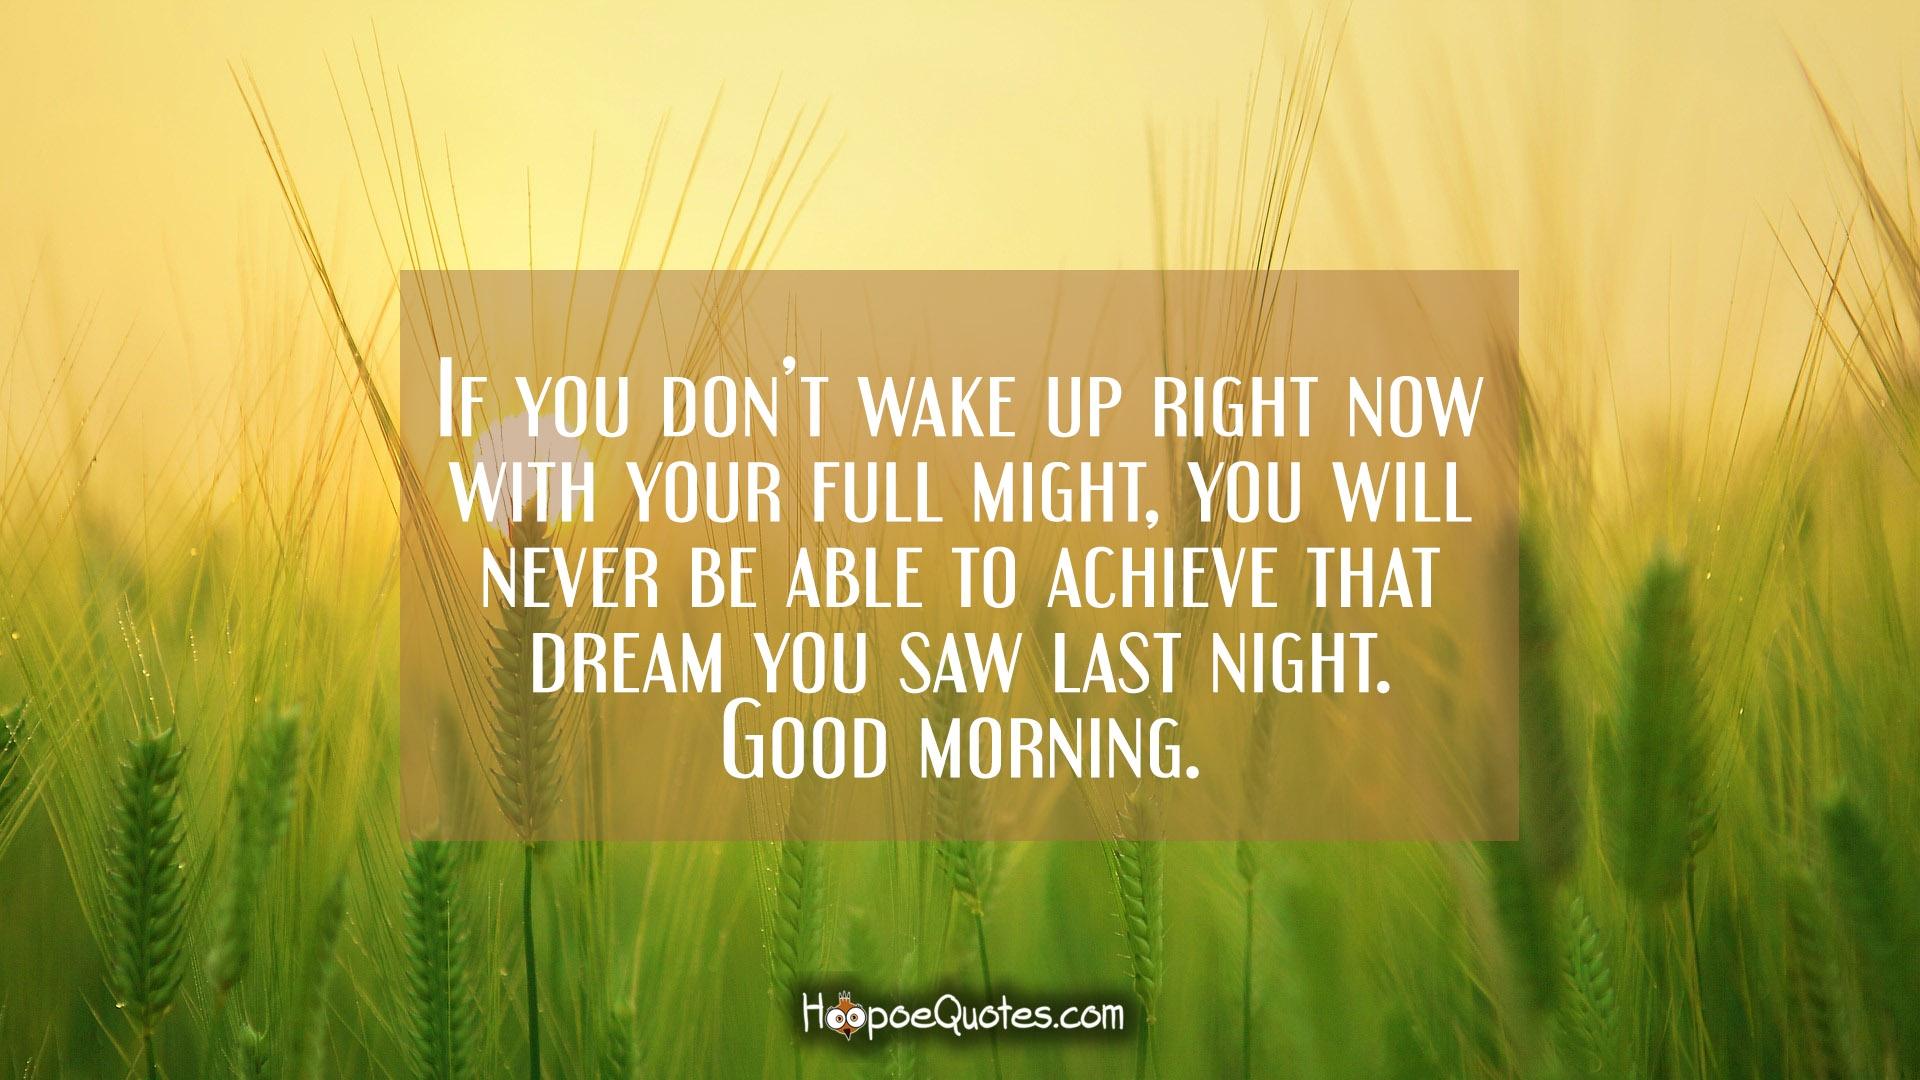 If You Dont Wake Up Right Now With Your Full Might You Will Never